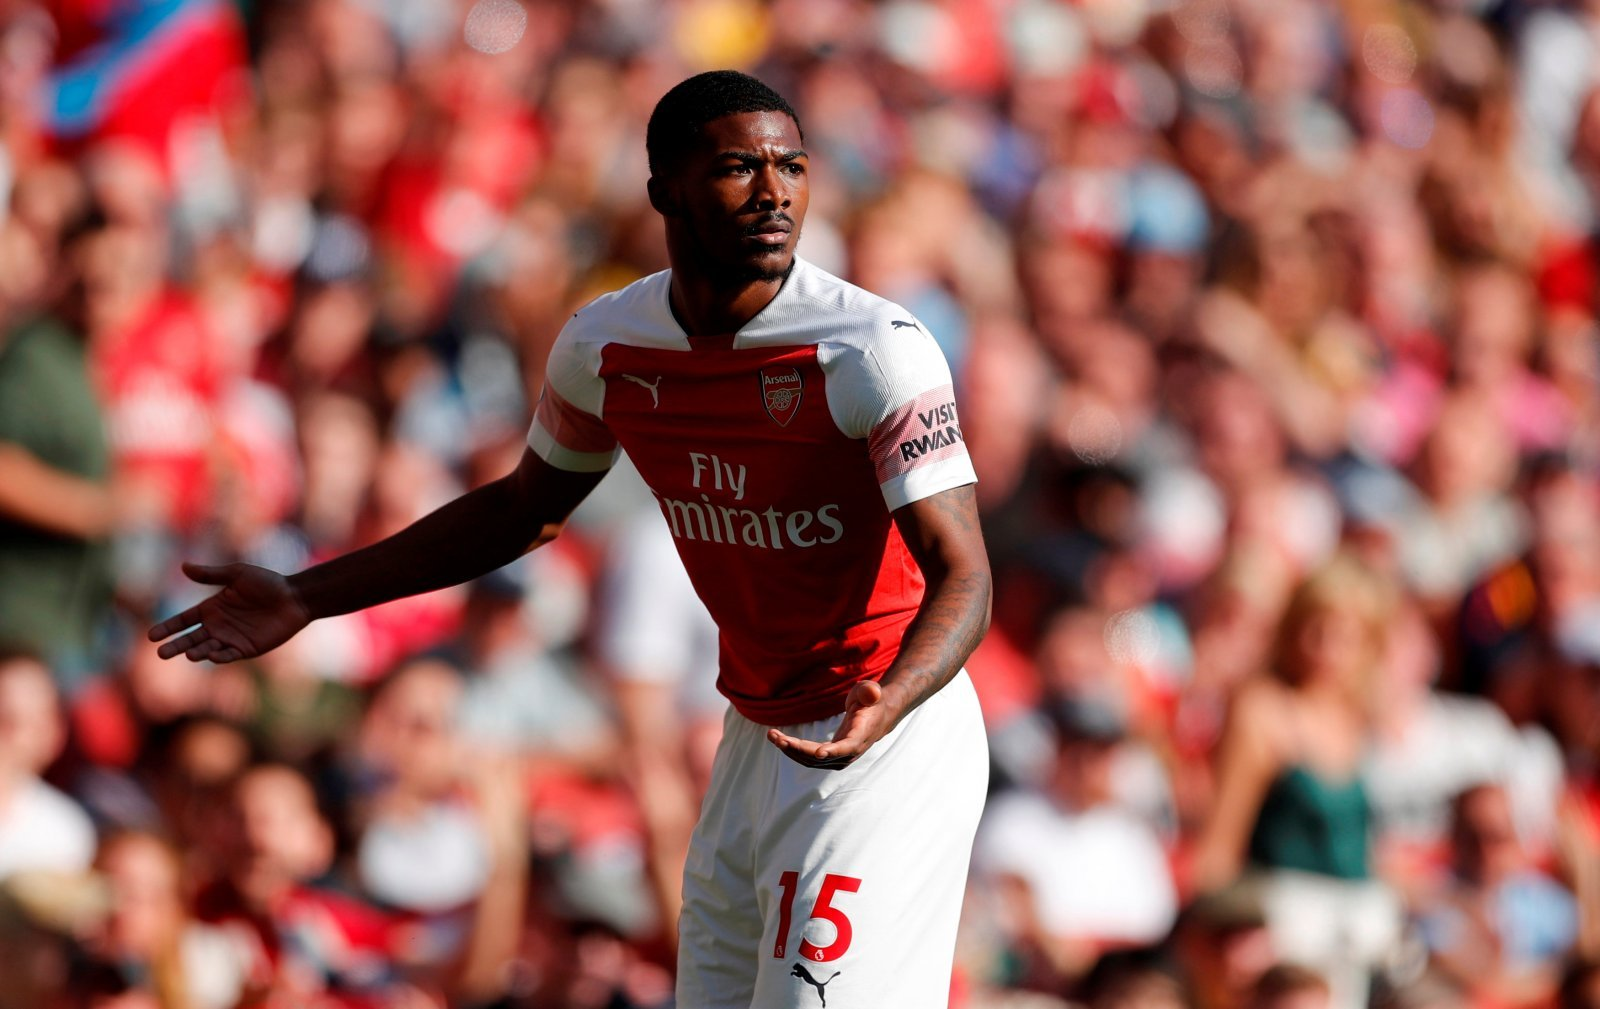 Arsenal: Mkhitaryan's Europa absence doubles the pressure on Ainsley Maitland-Niles